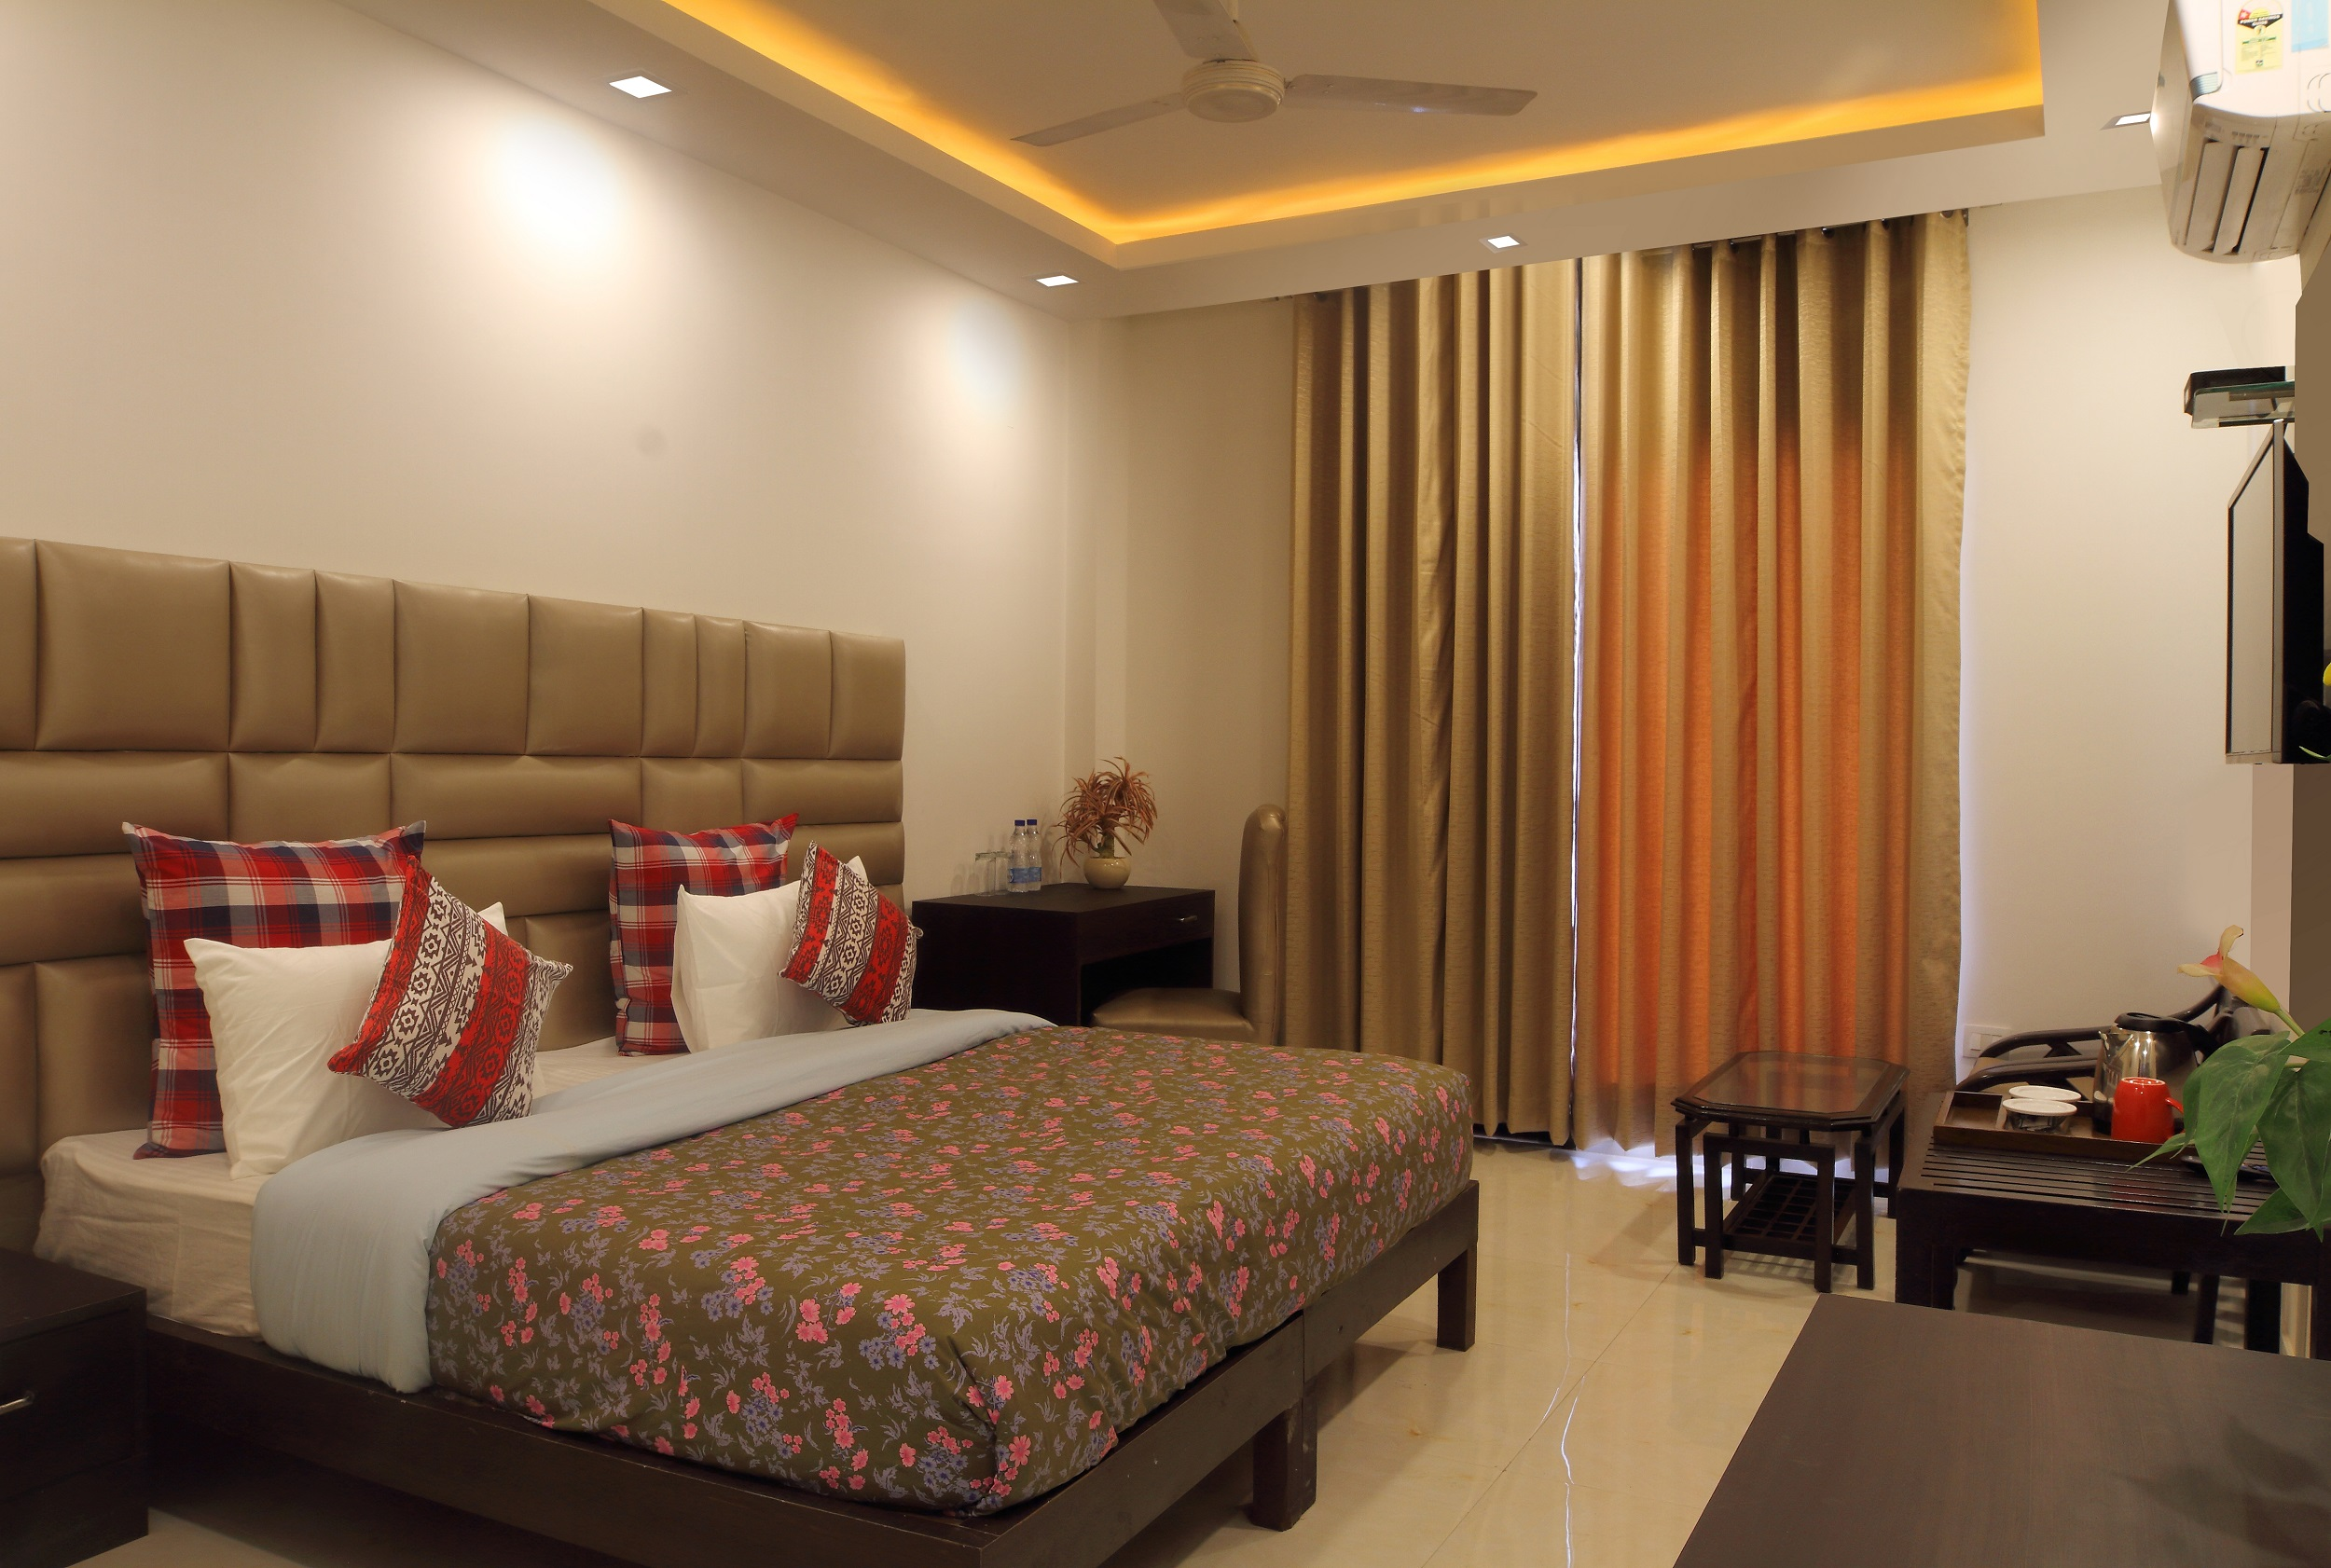 Winsome Room - Bedroom